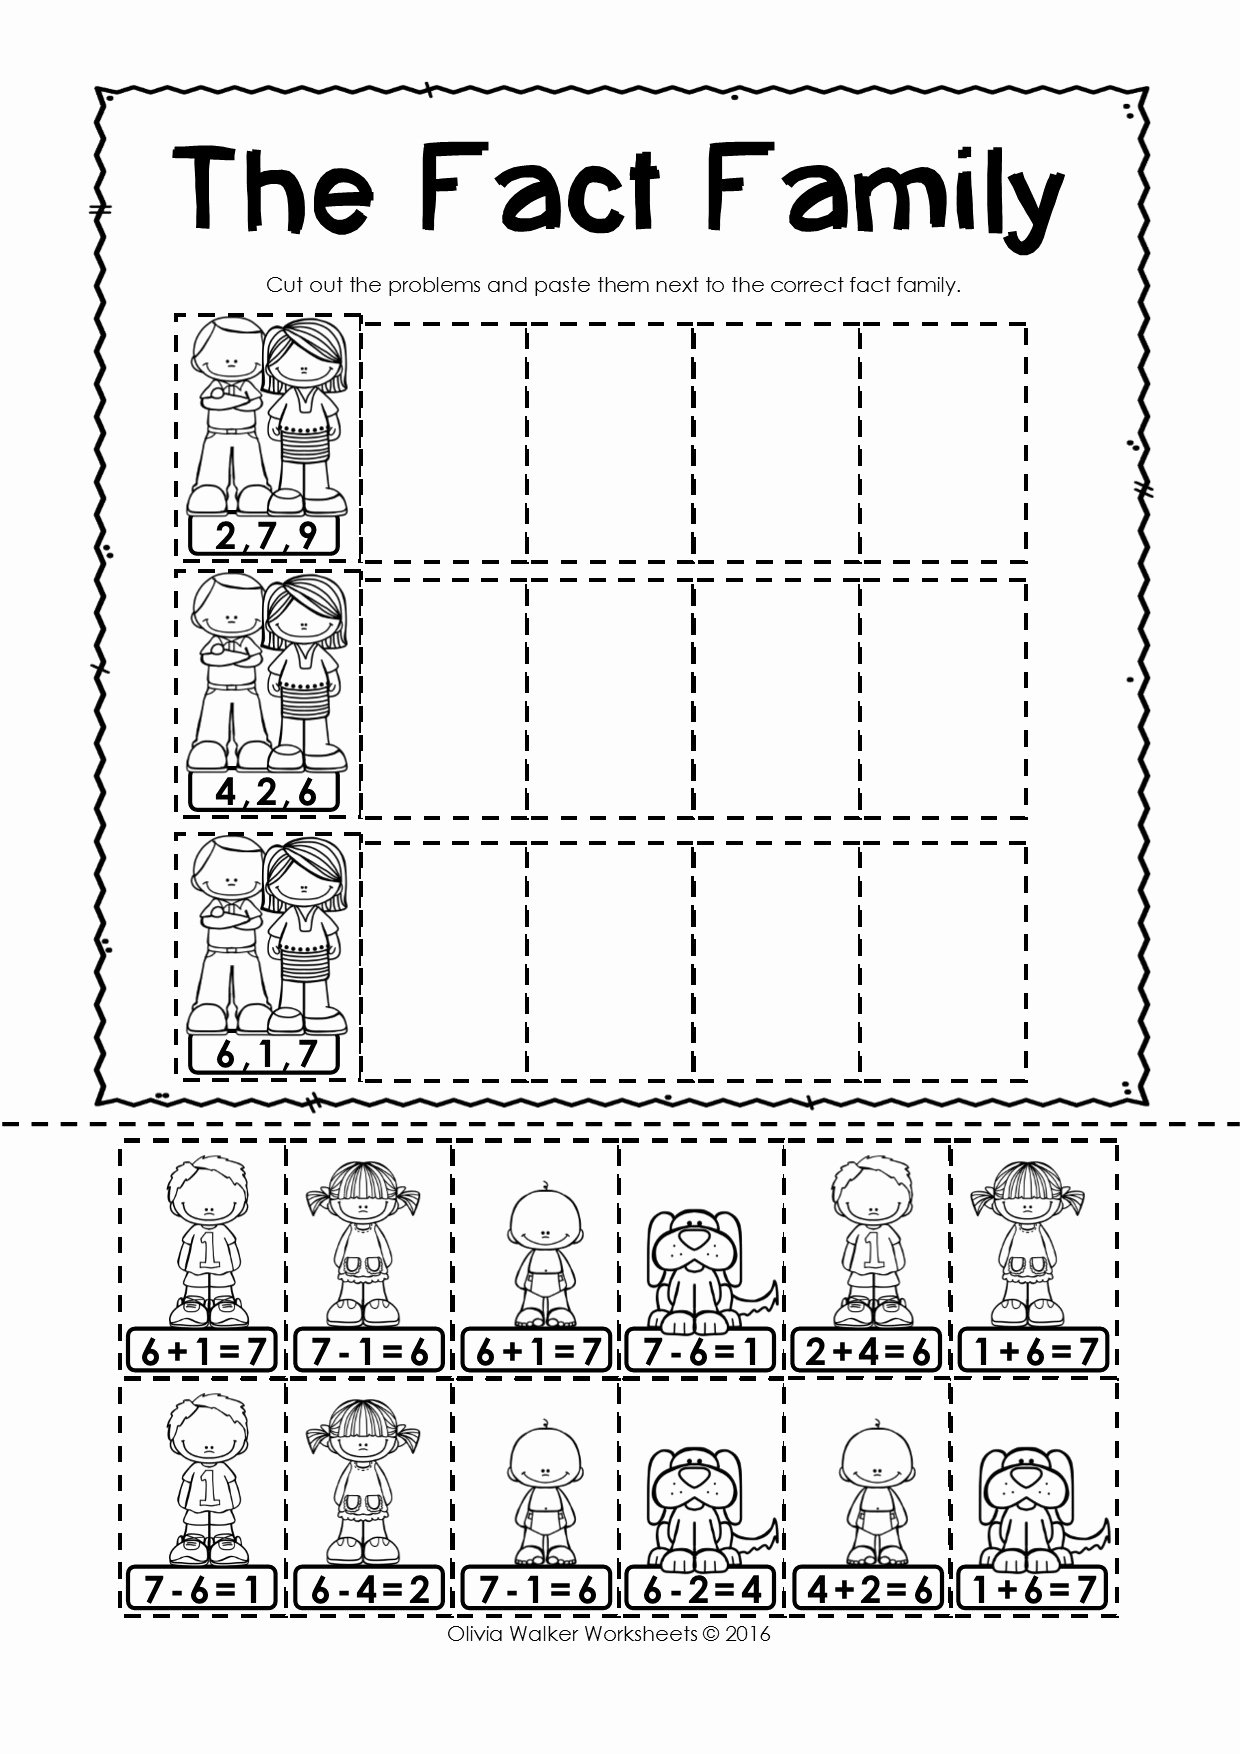 Family Worksheets for Preschoolers top Worksheet Munity Workers Right Age for